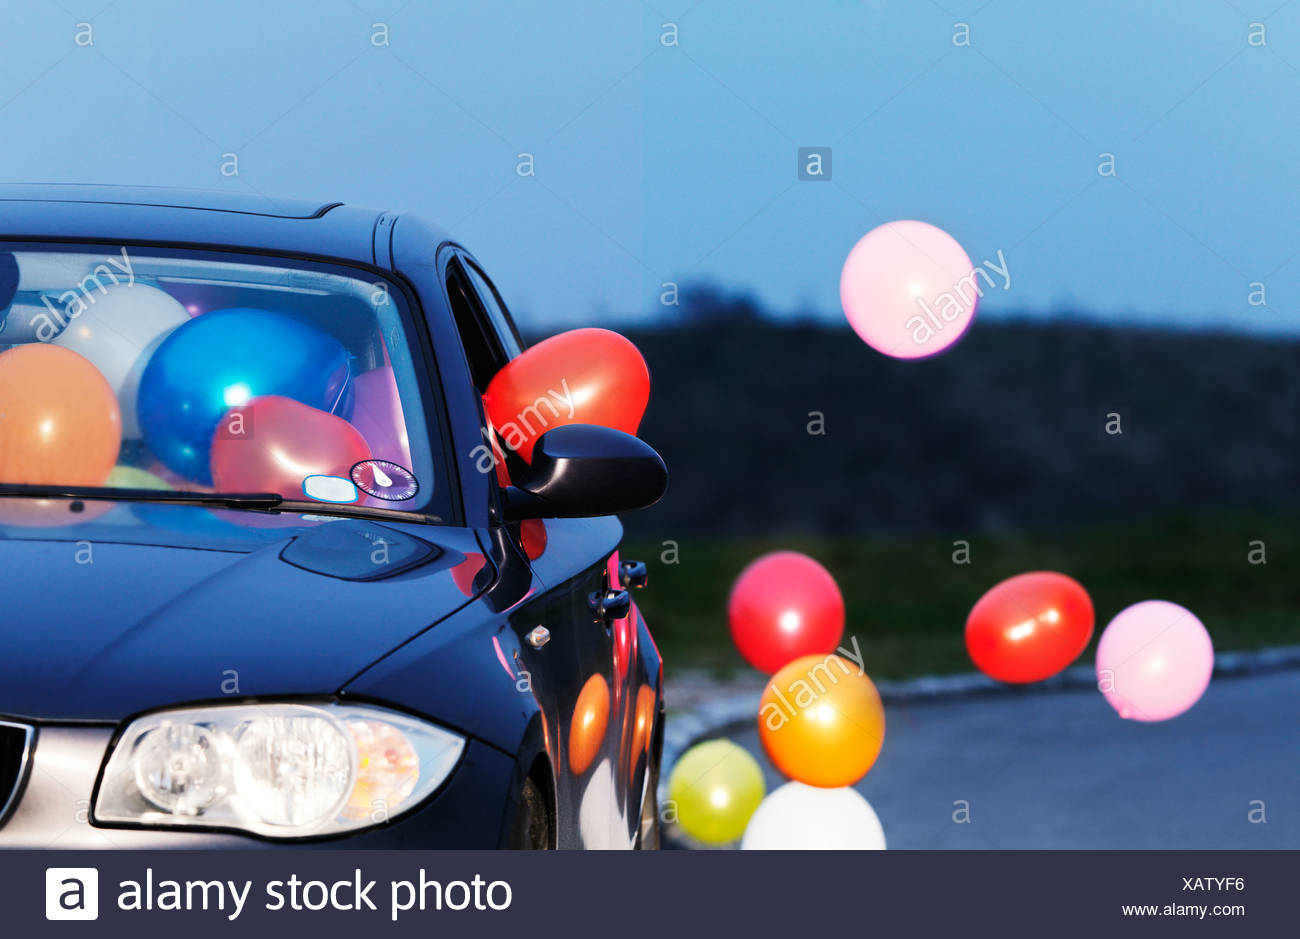 Colorful balloons coming out car window - Stock Image